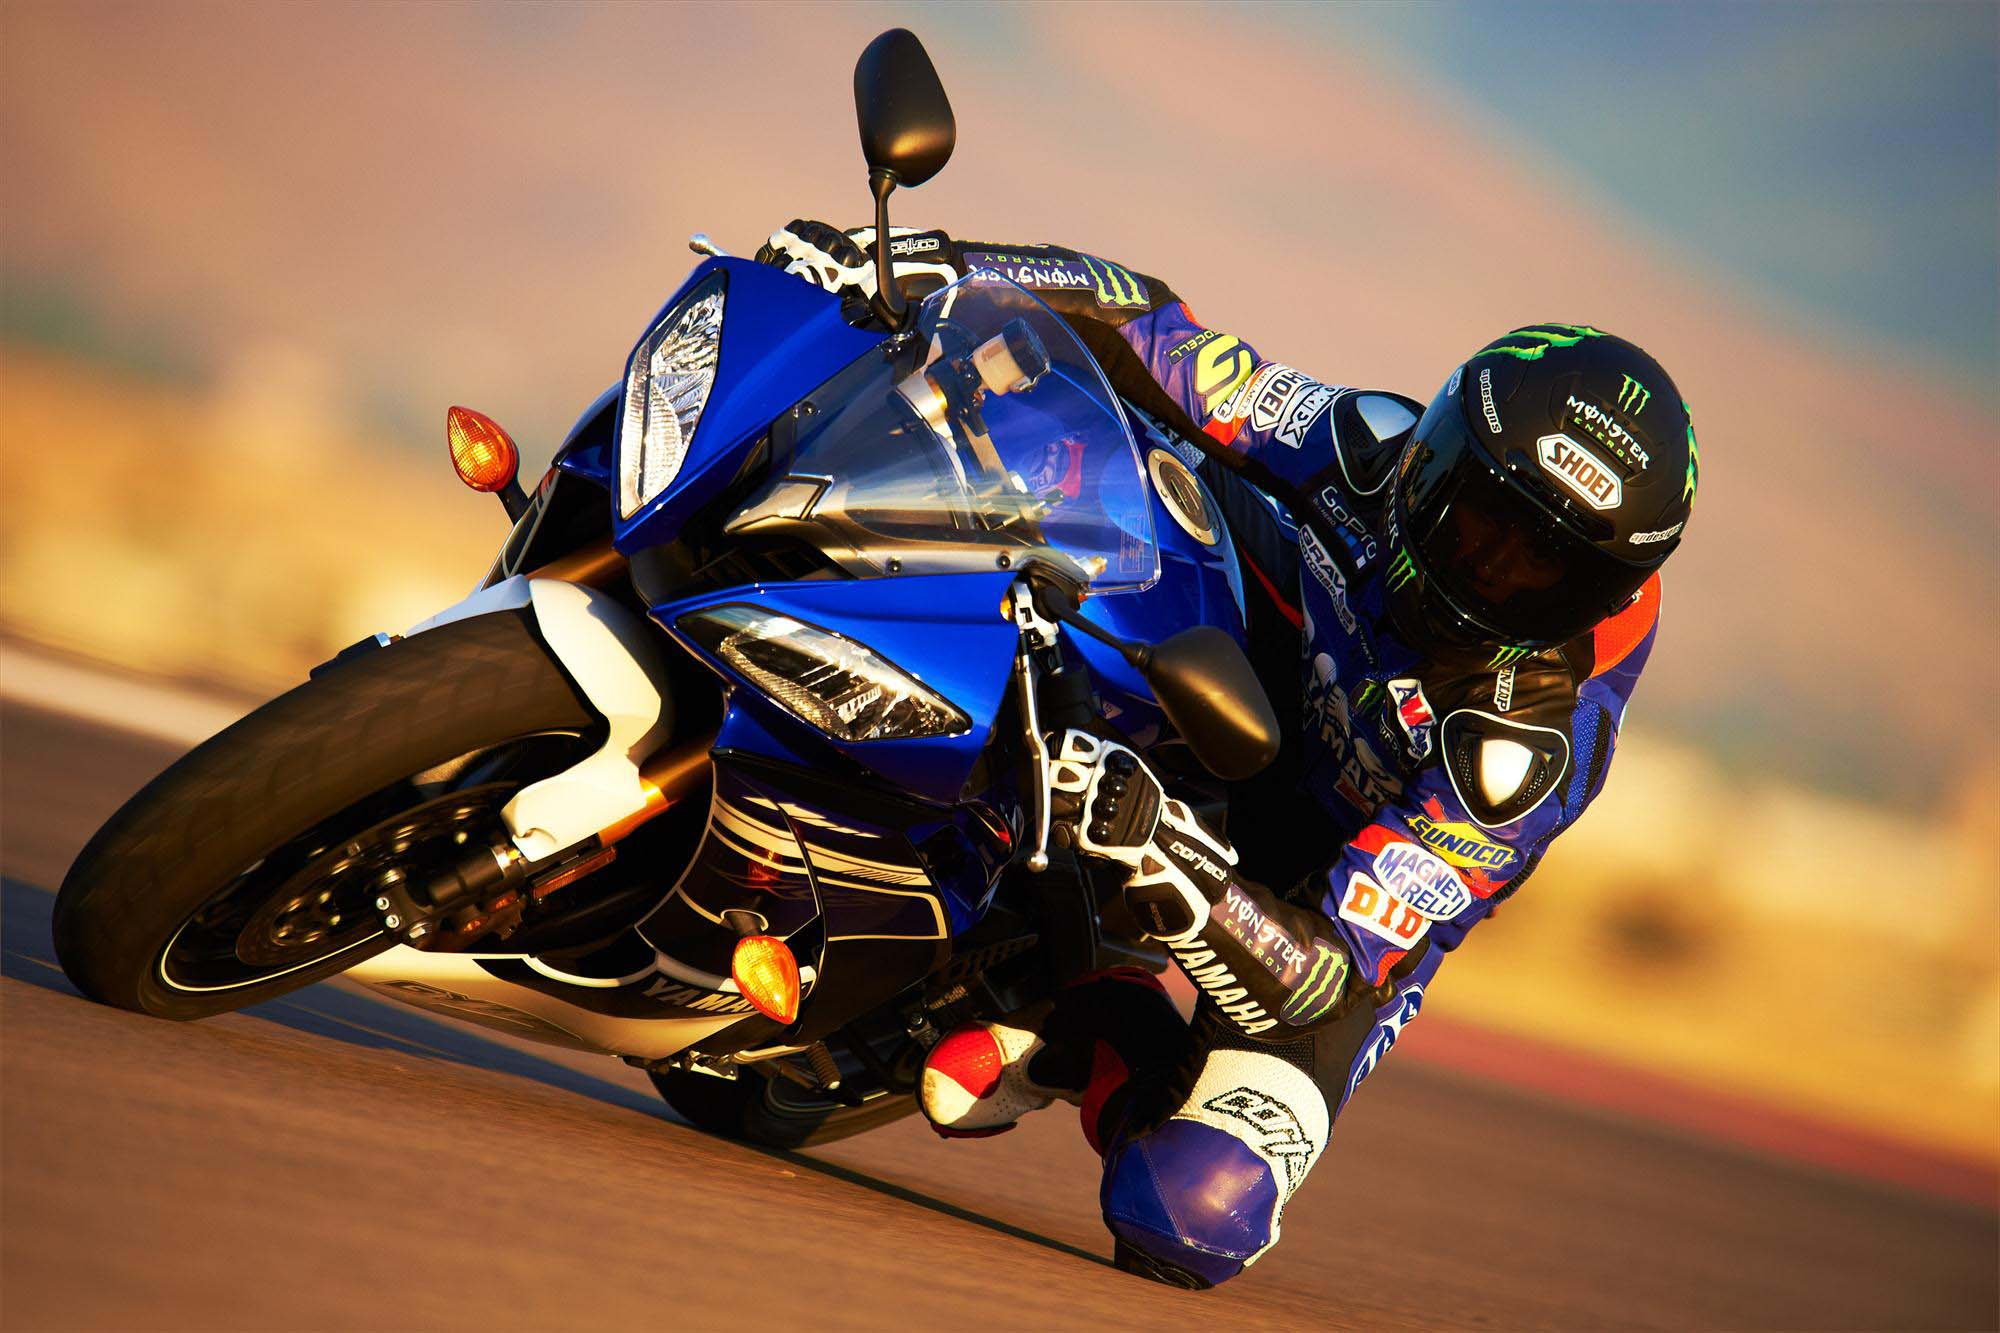 And here is the 2013 yamaha yzf r6 asphalt rubber 2013 yamaha yzf r6 26 altavistaventures Gallery